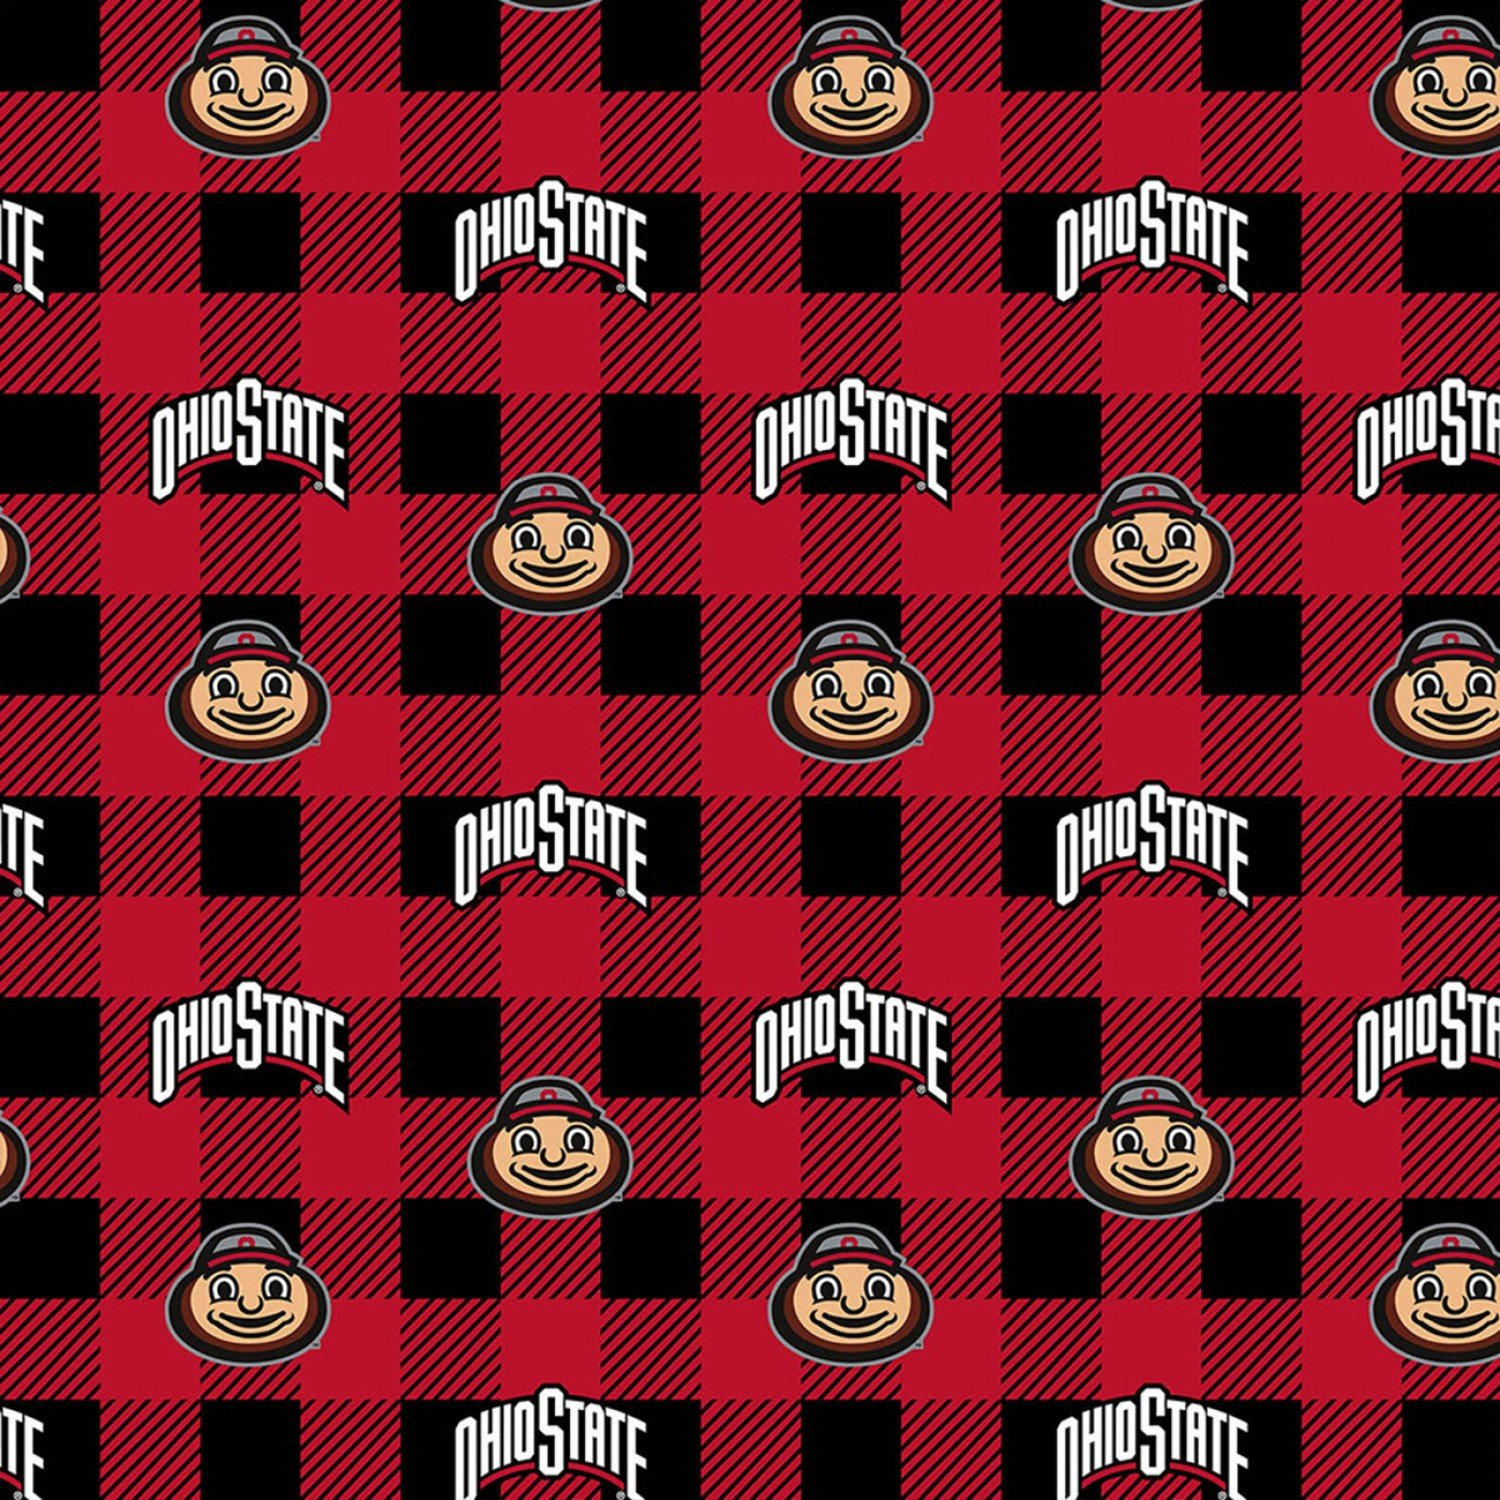 OHS-1190 Ohio State Buckeyes Buffalo Plaid Fleece